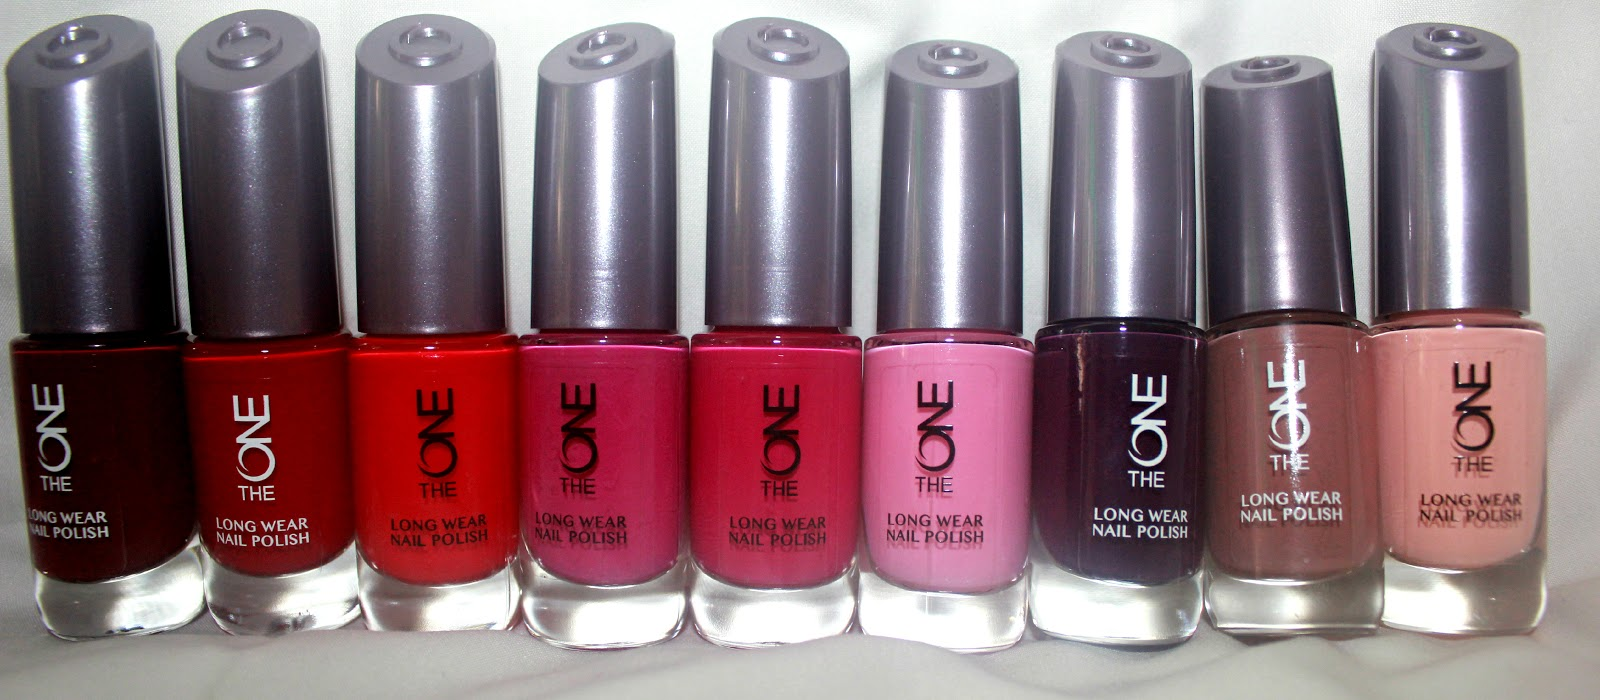 Oriflame The One Long Wear Nail Polish Review - Makeup Review And ...